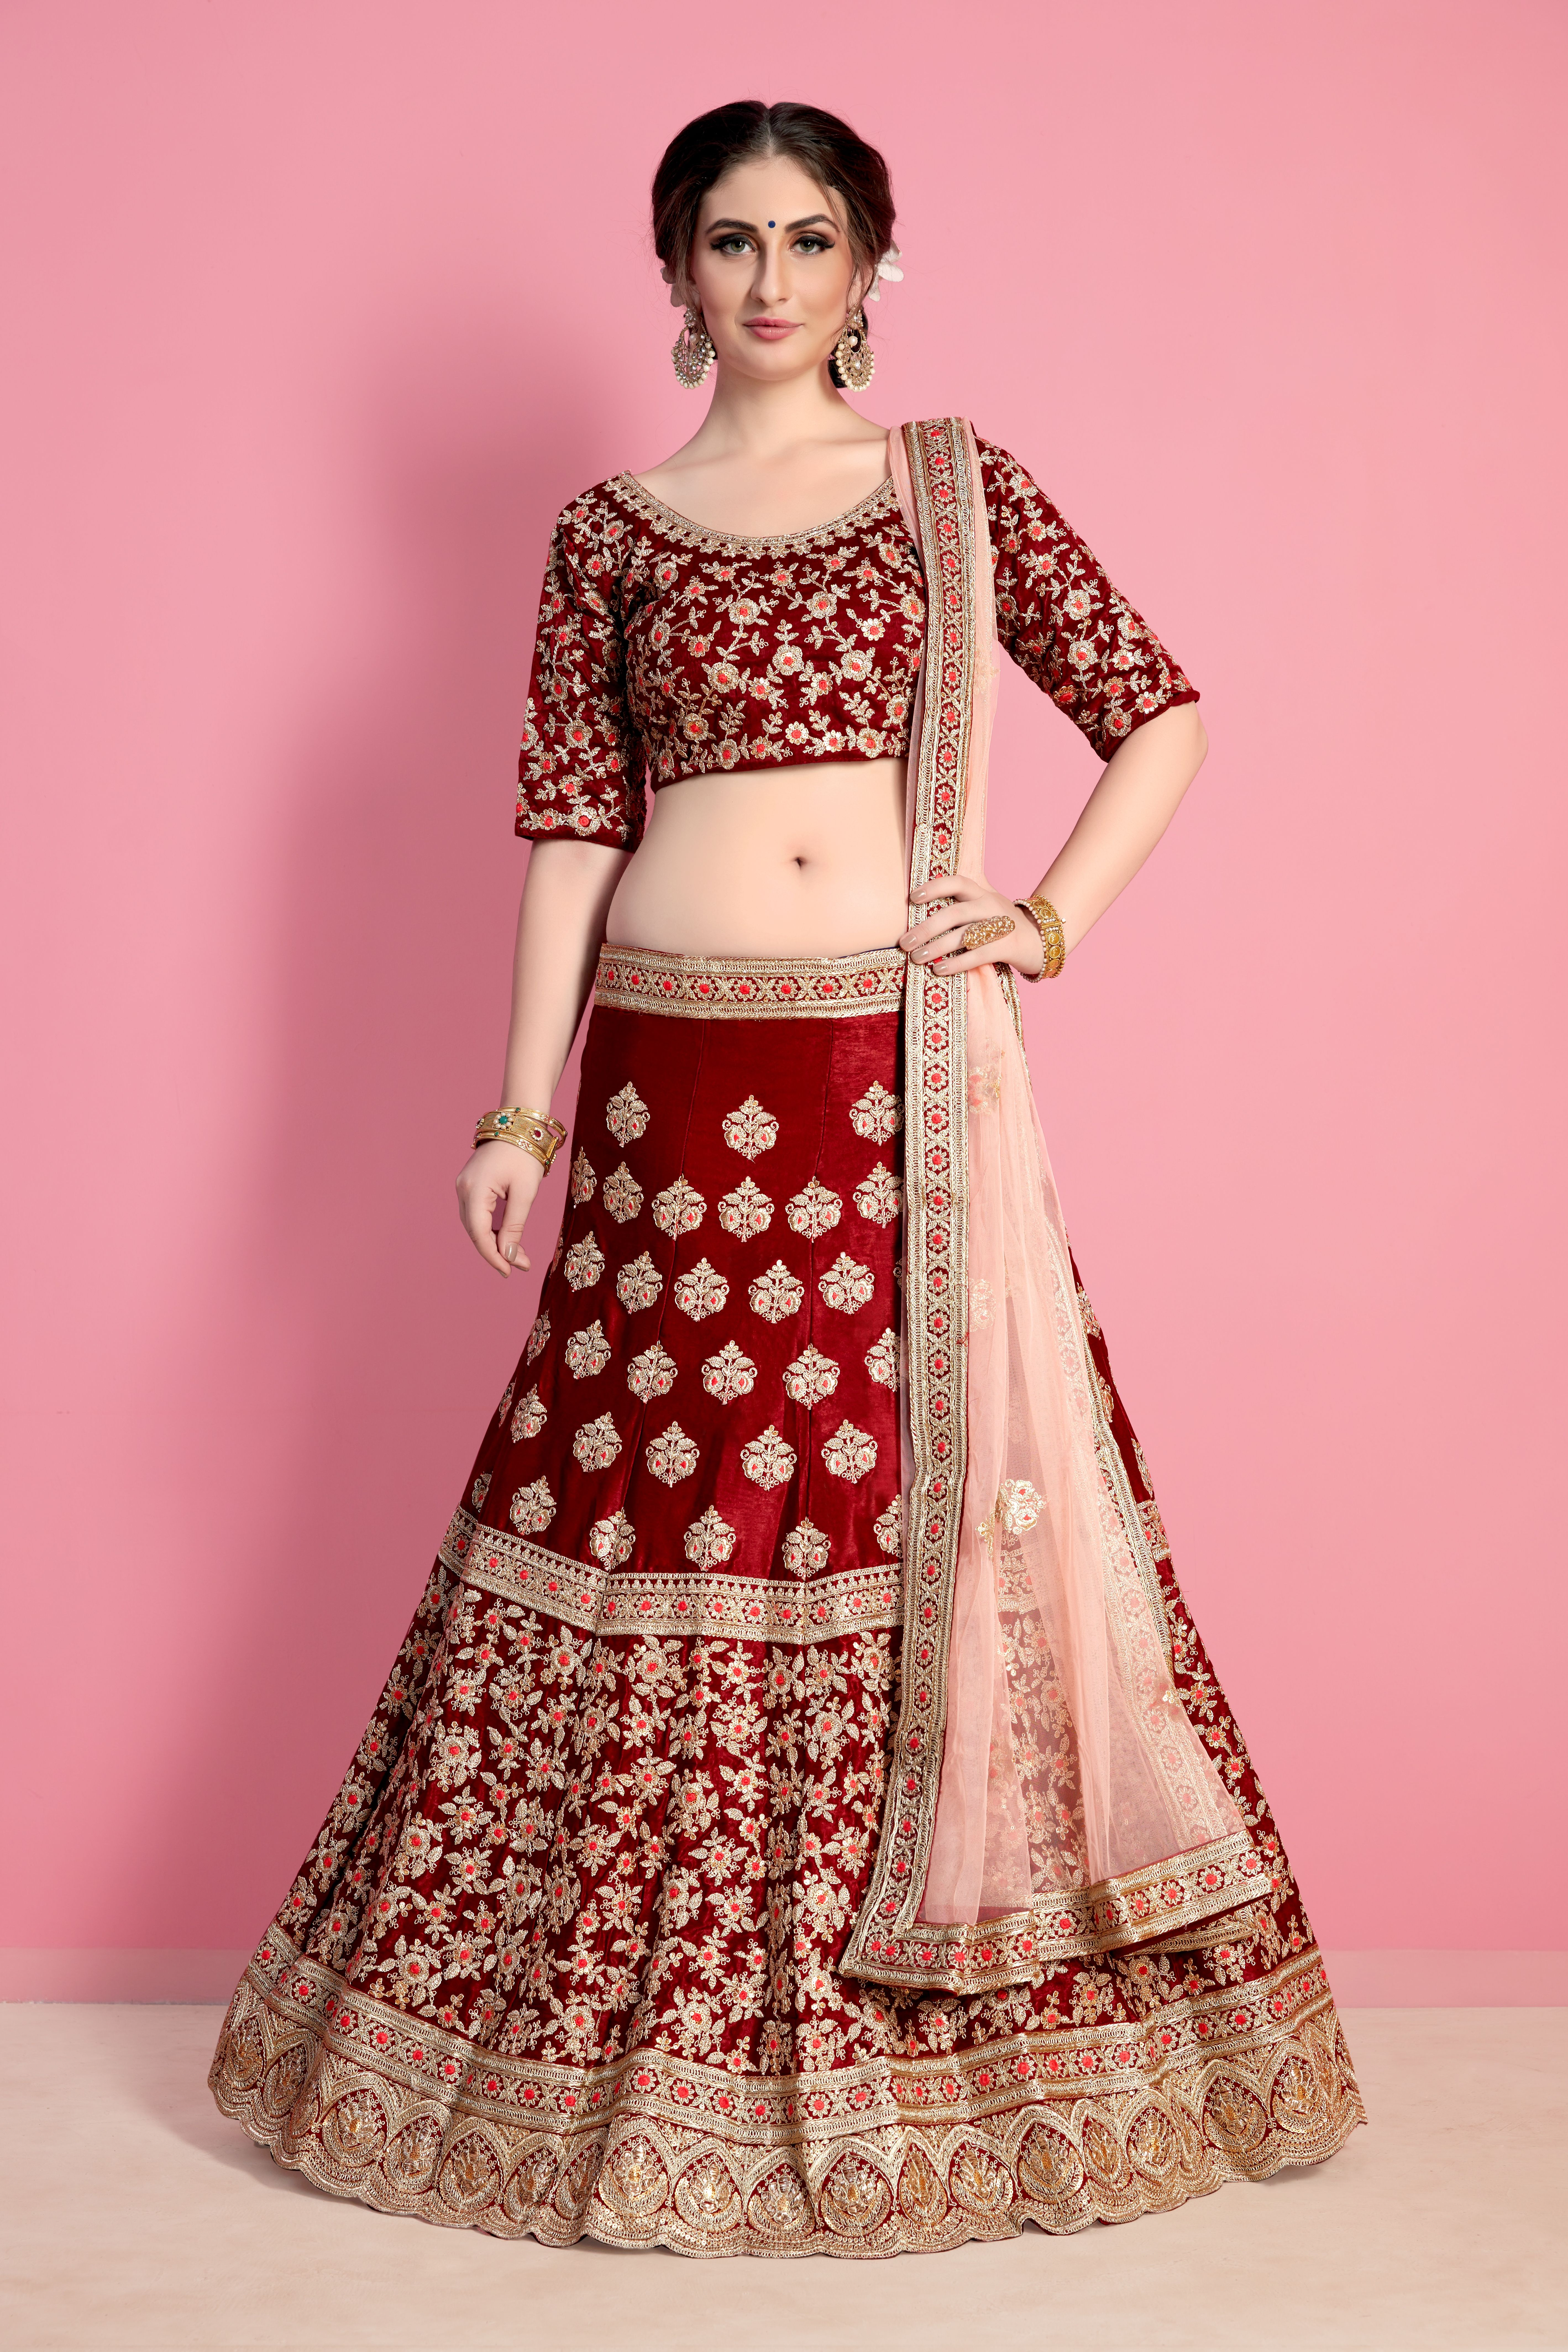 aa8334b7b9 Maroon velvet silk heavy embroidered bridal lehenga set. This lehenga set  is adorned with resham, sequins and dori work. Comes with a matching  unstitched ...